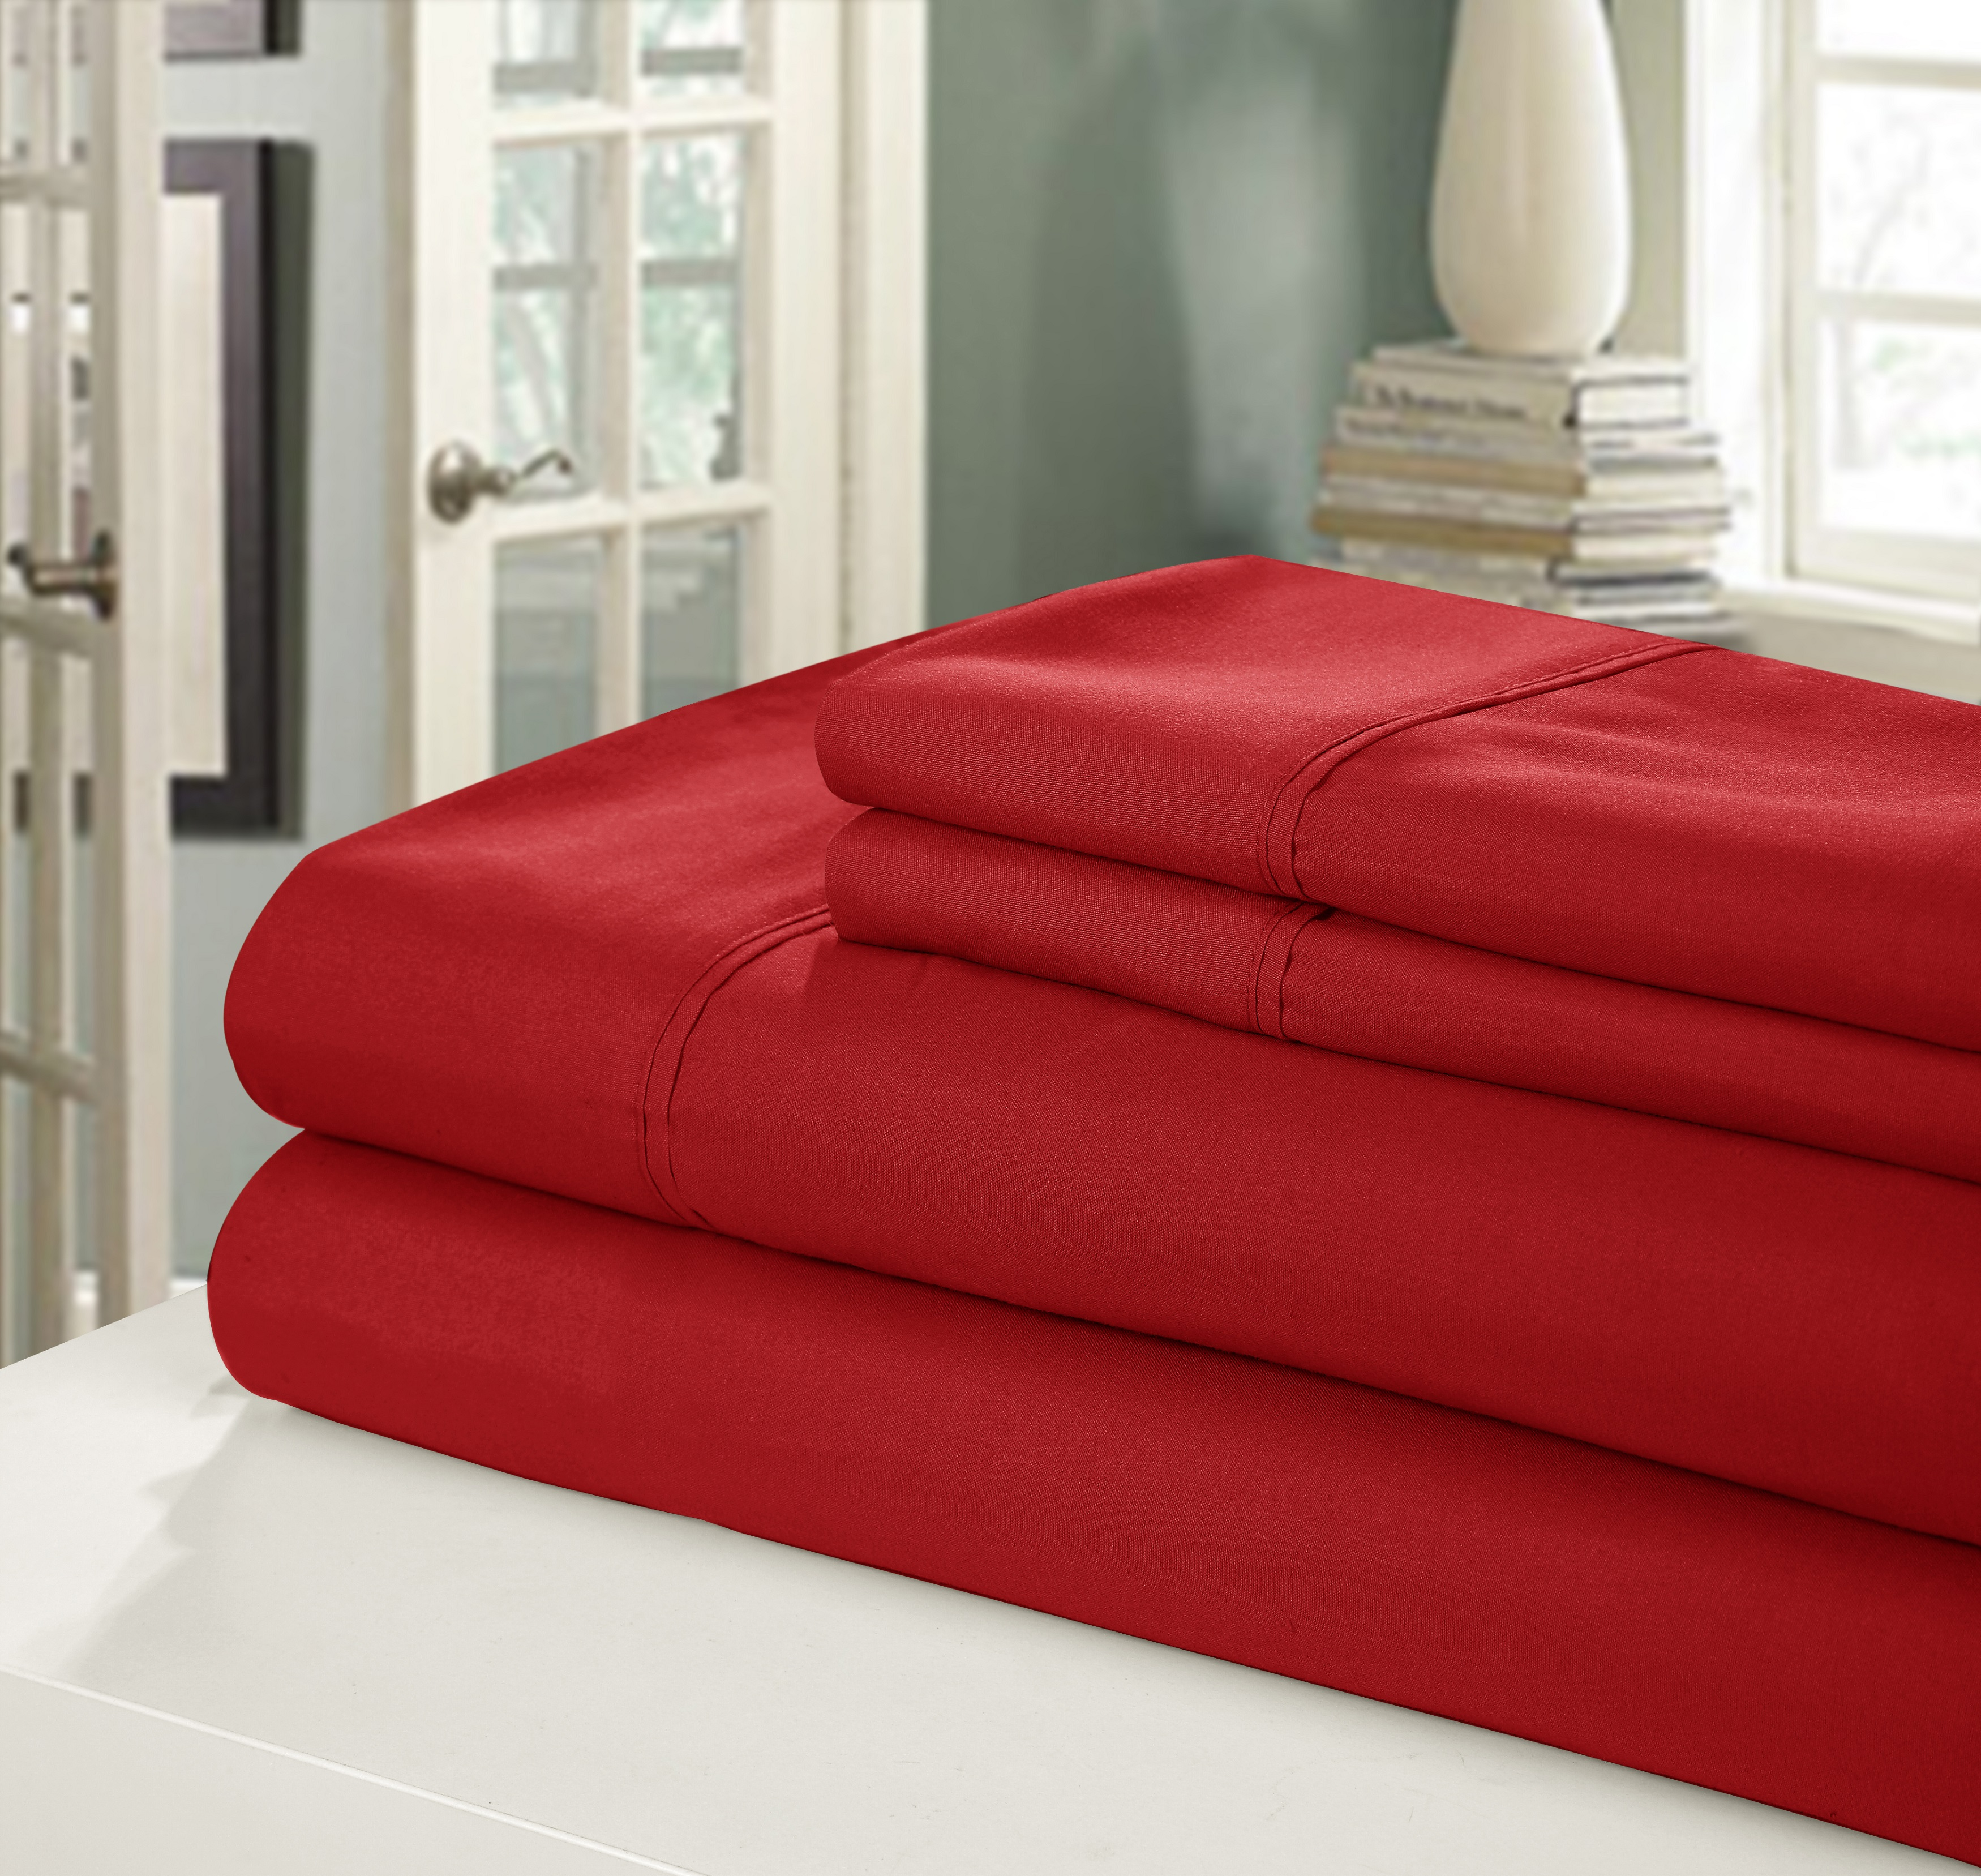 Chic Home NEW!! Chic Home 400 Series Peach Skin Microfiber 4-Piece Sheet Set Ensemble, Full, Red